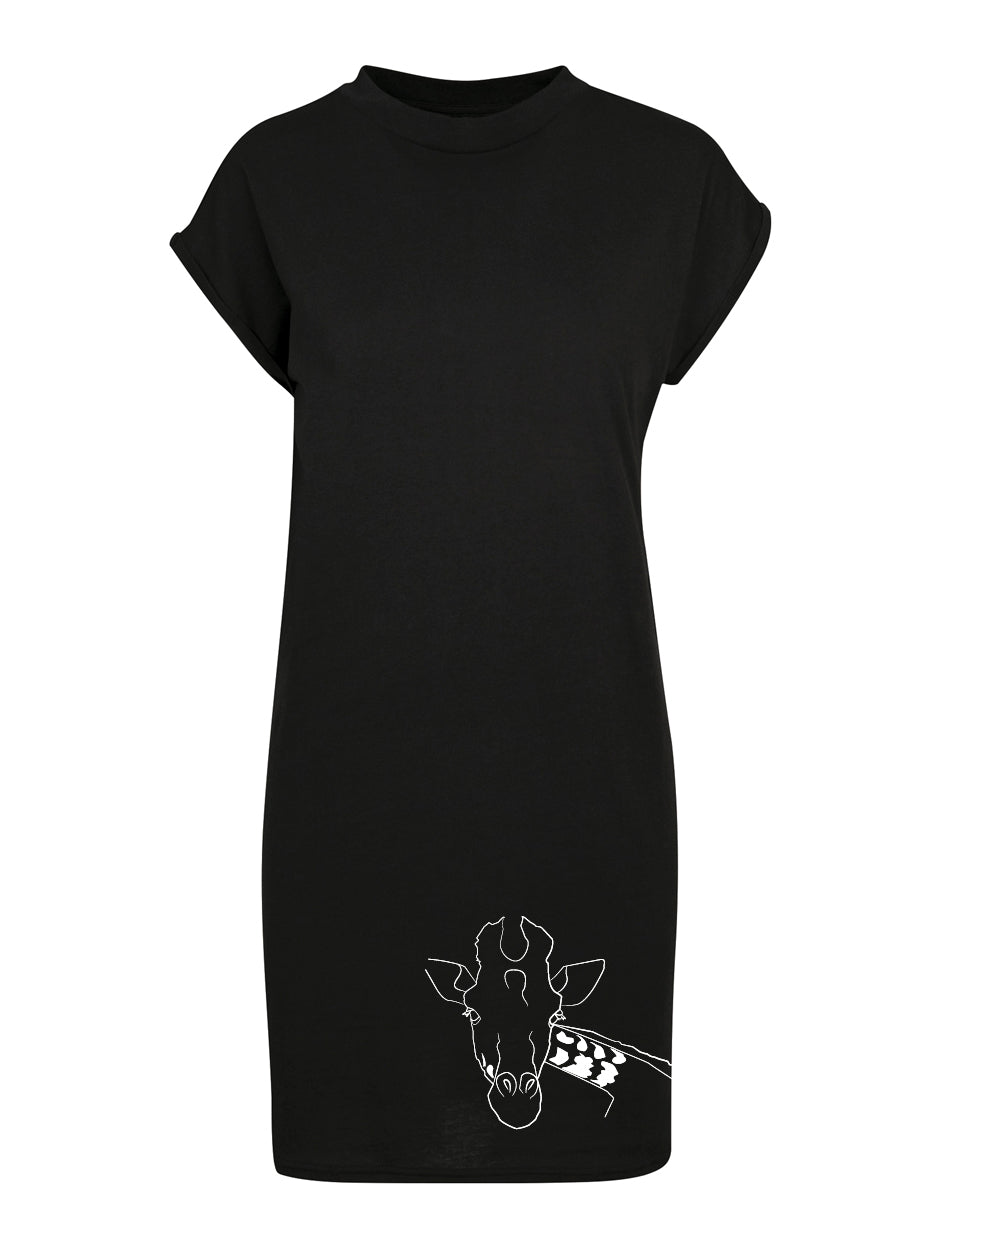 Giraffe dress, black